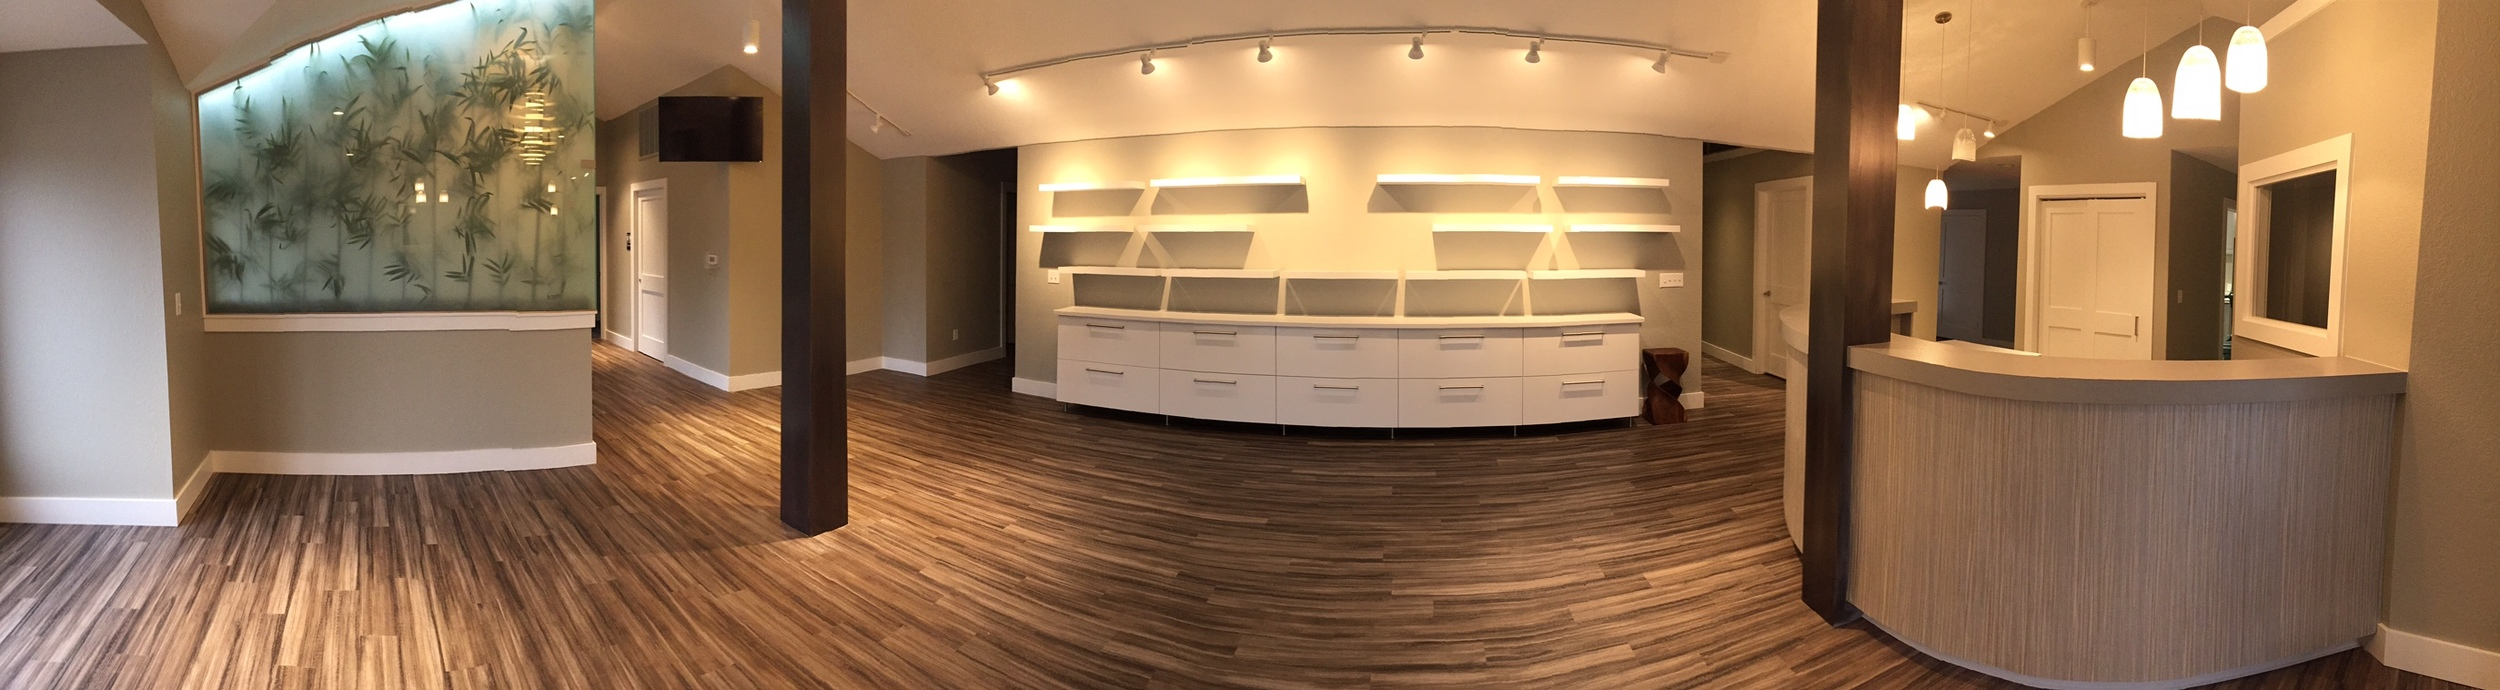 Dr. Welch Office 13 Lobby Panoramic.jpg